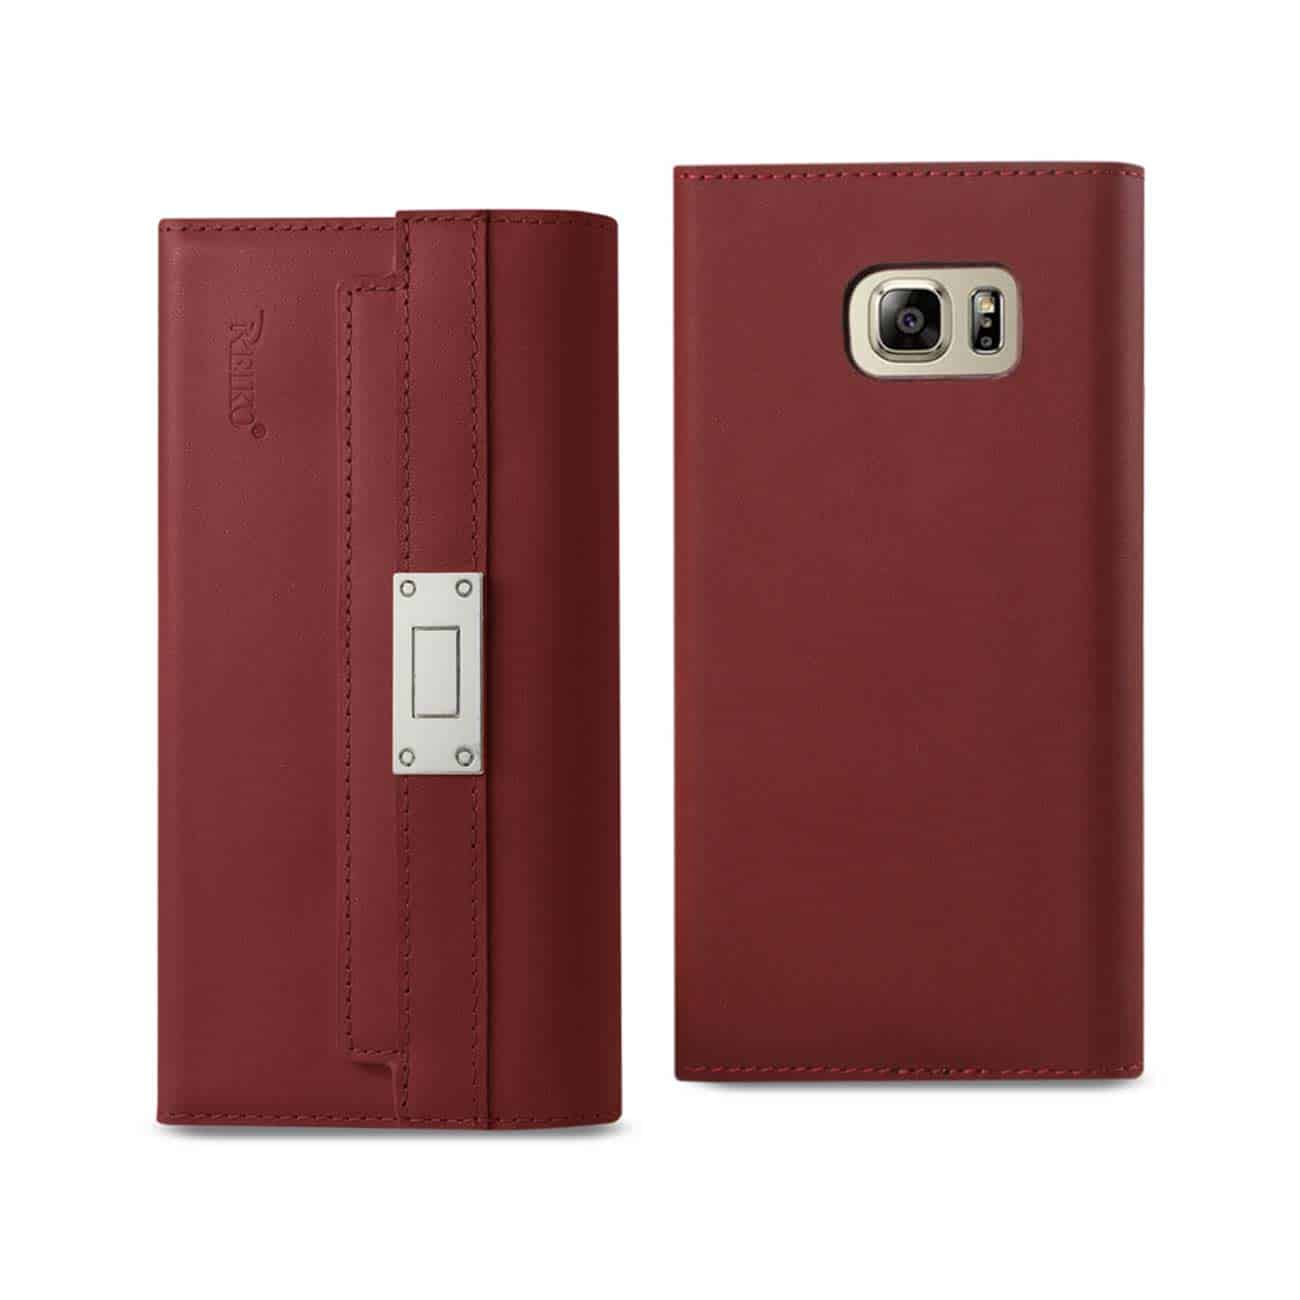 SAMSUNG GALAXY NOTE 5 GENUINE LEATHER RFID WALLET CASE AND METAL BUCKLE BELT IN BURGUNDY